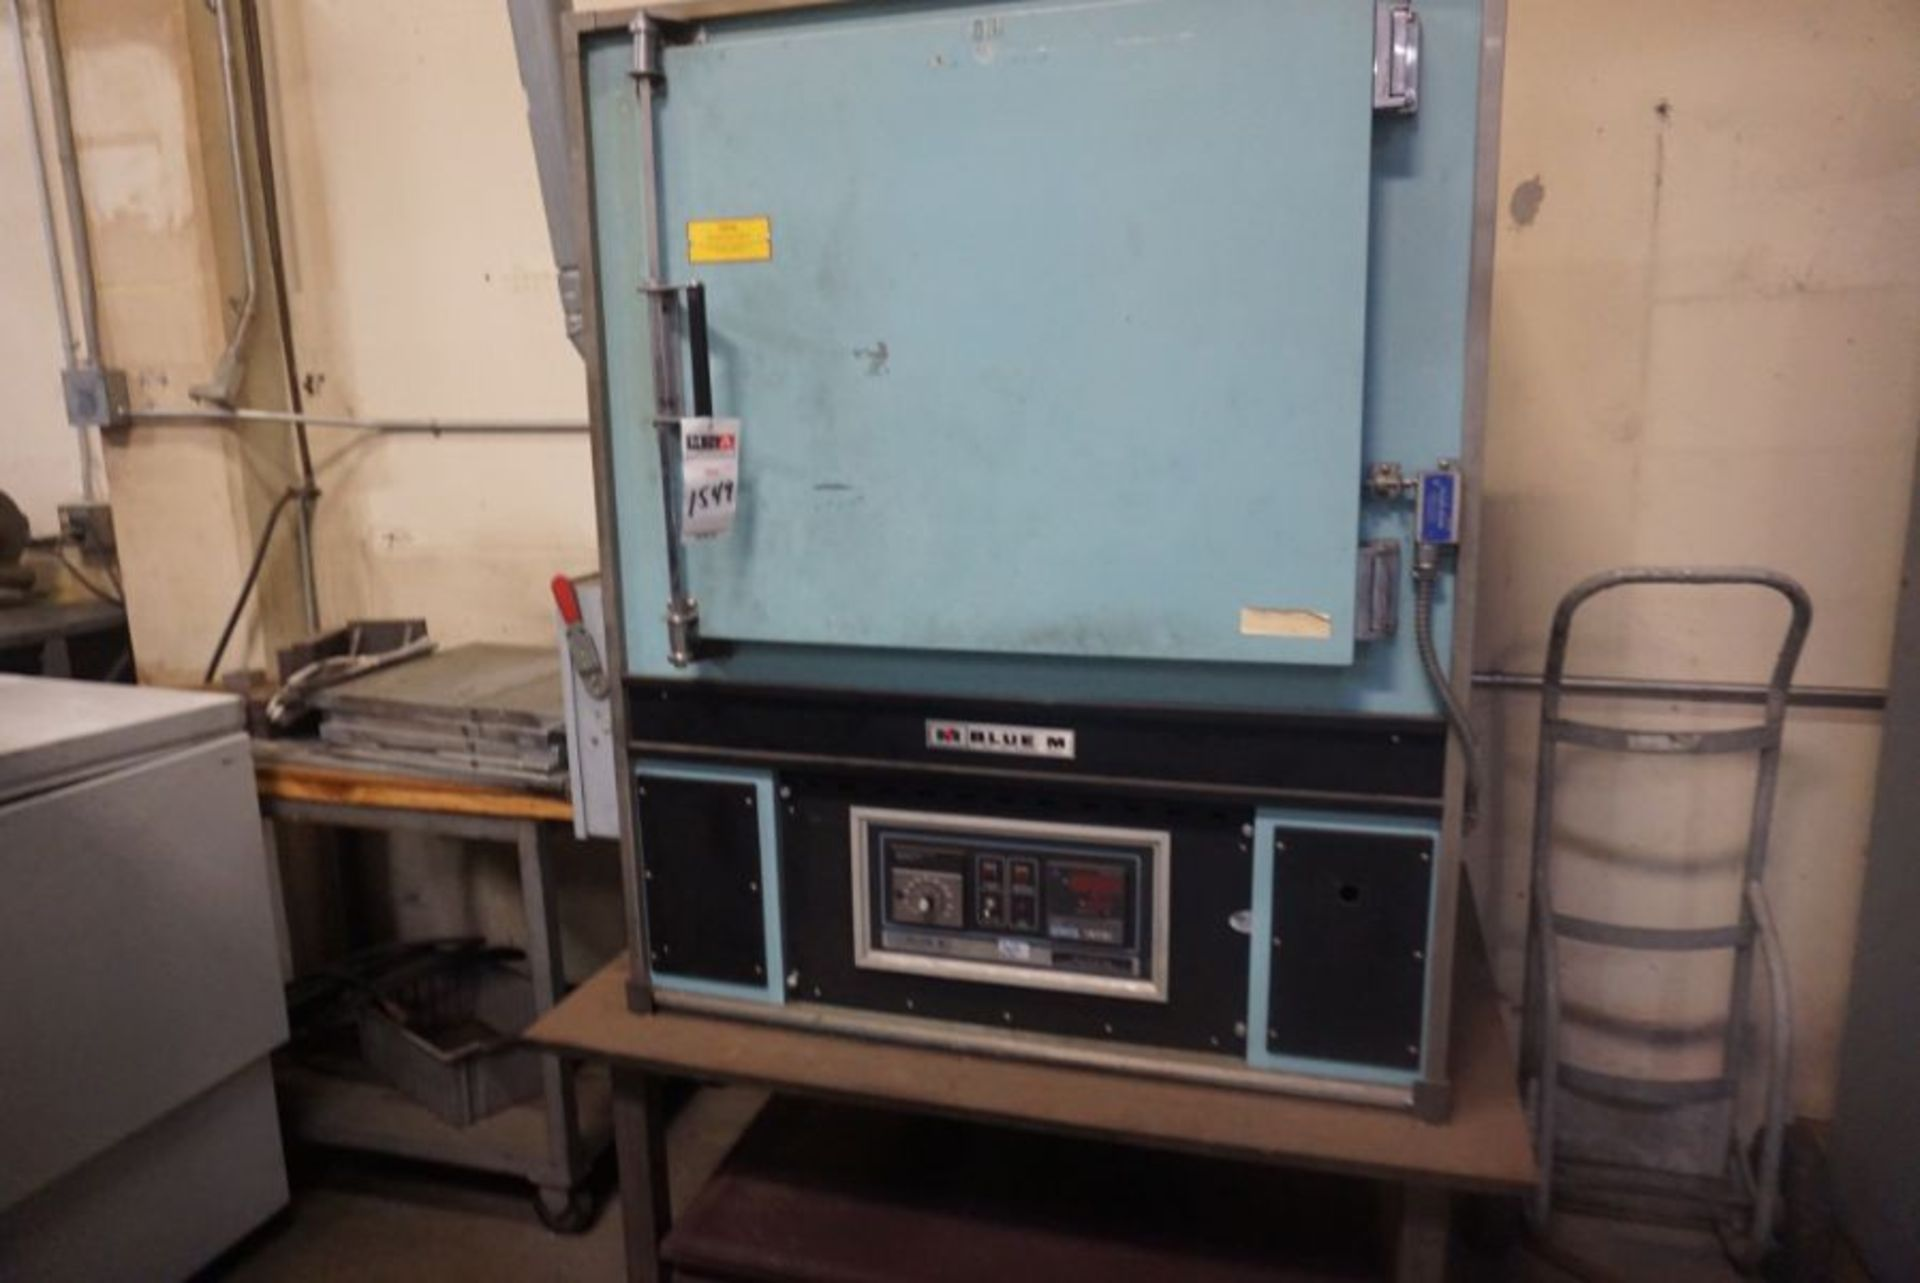 Lot 93 - Blue M DC256C 650 Degree Max. Temp. Convection Oven, s/n DC3476